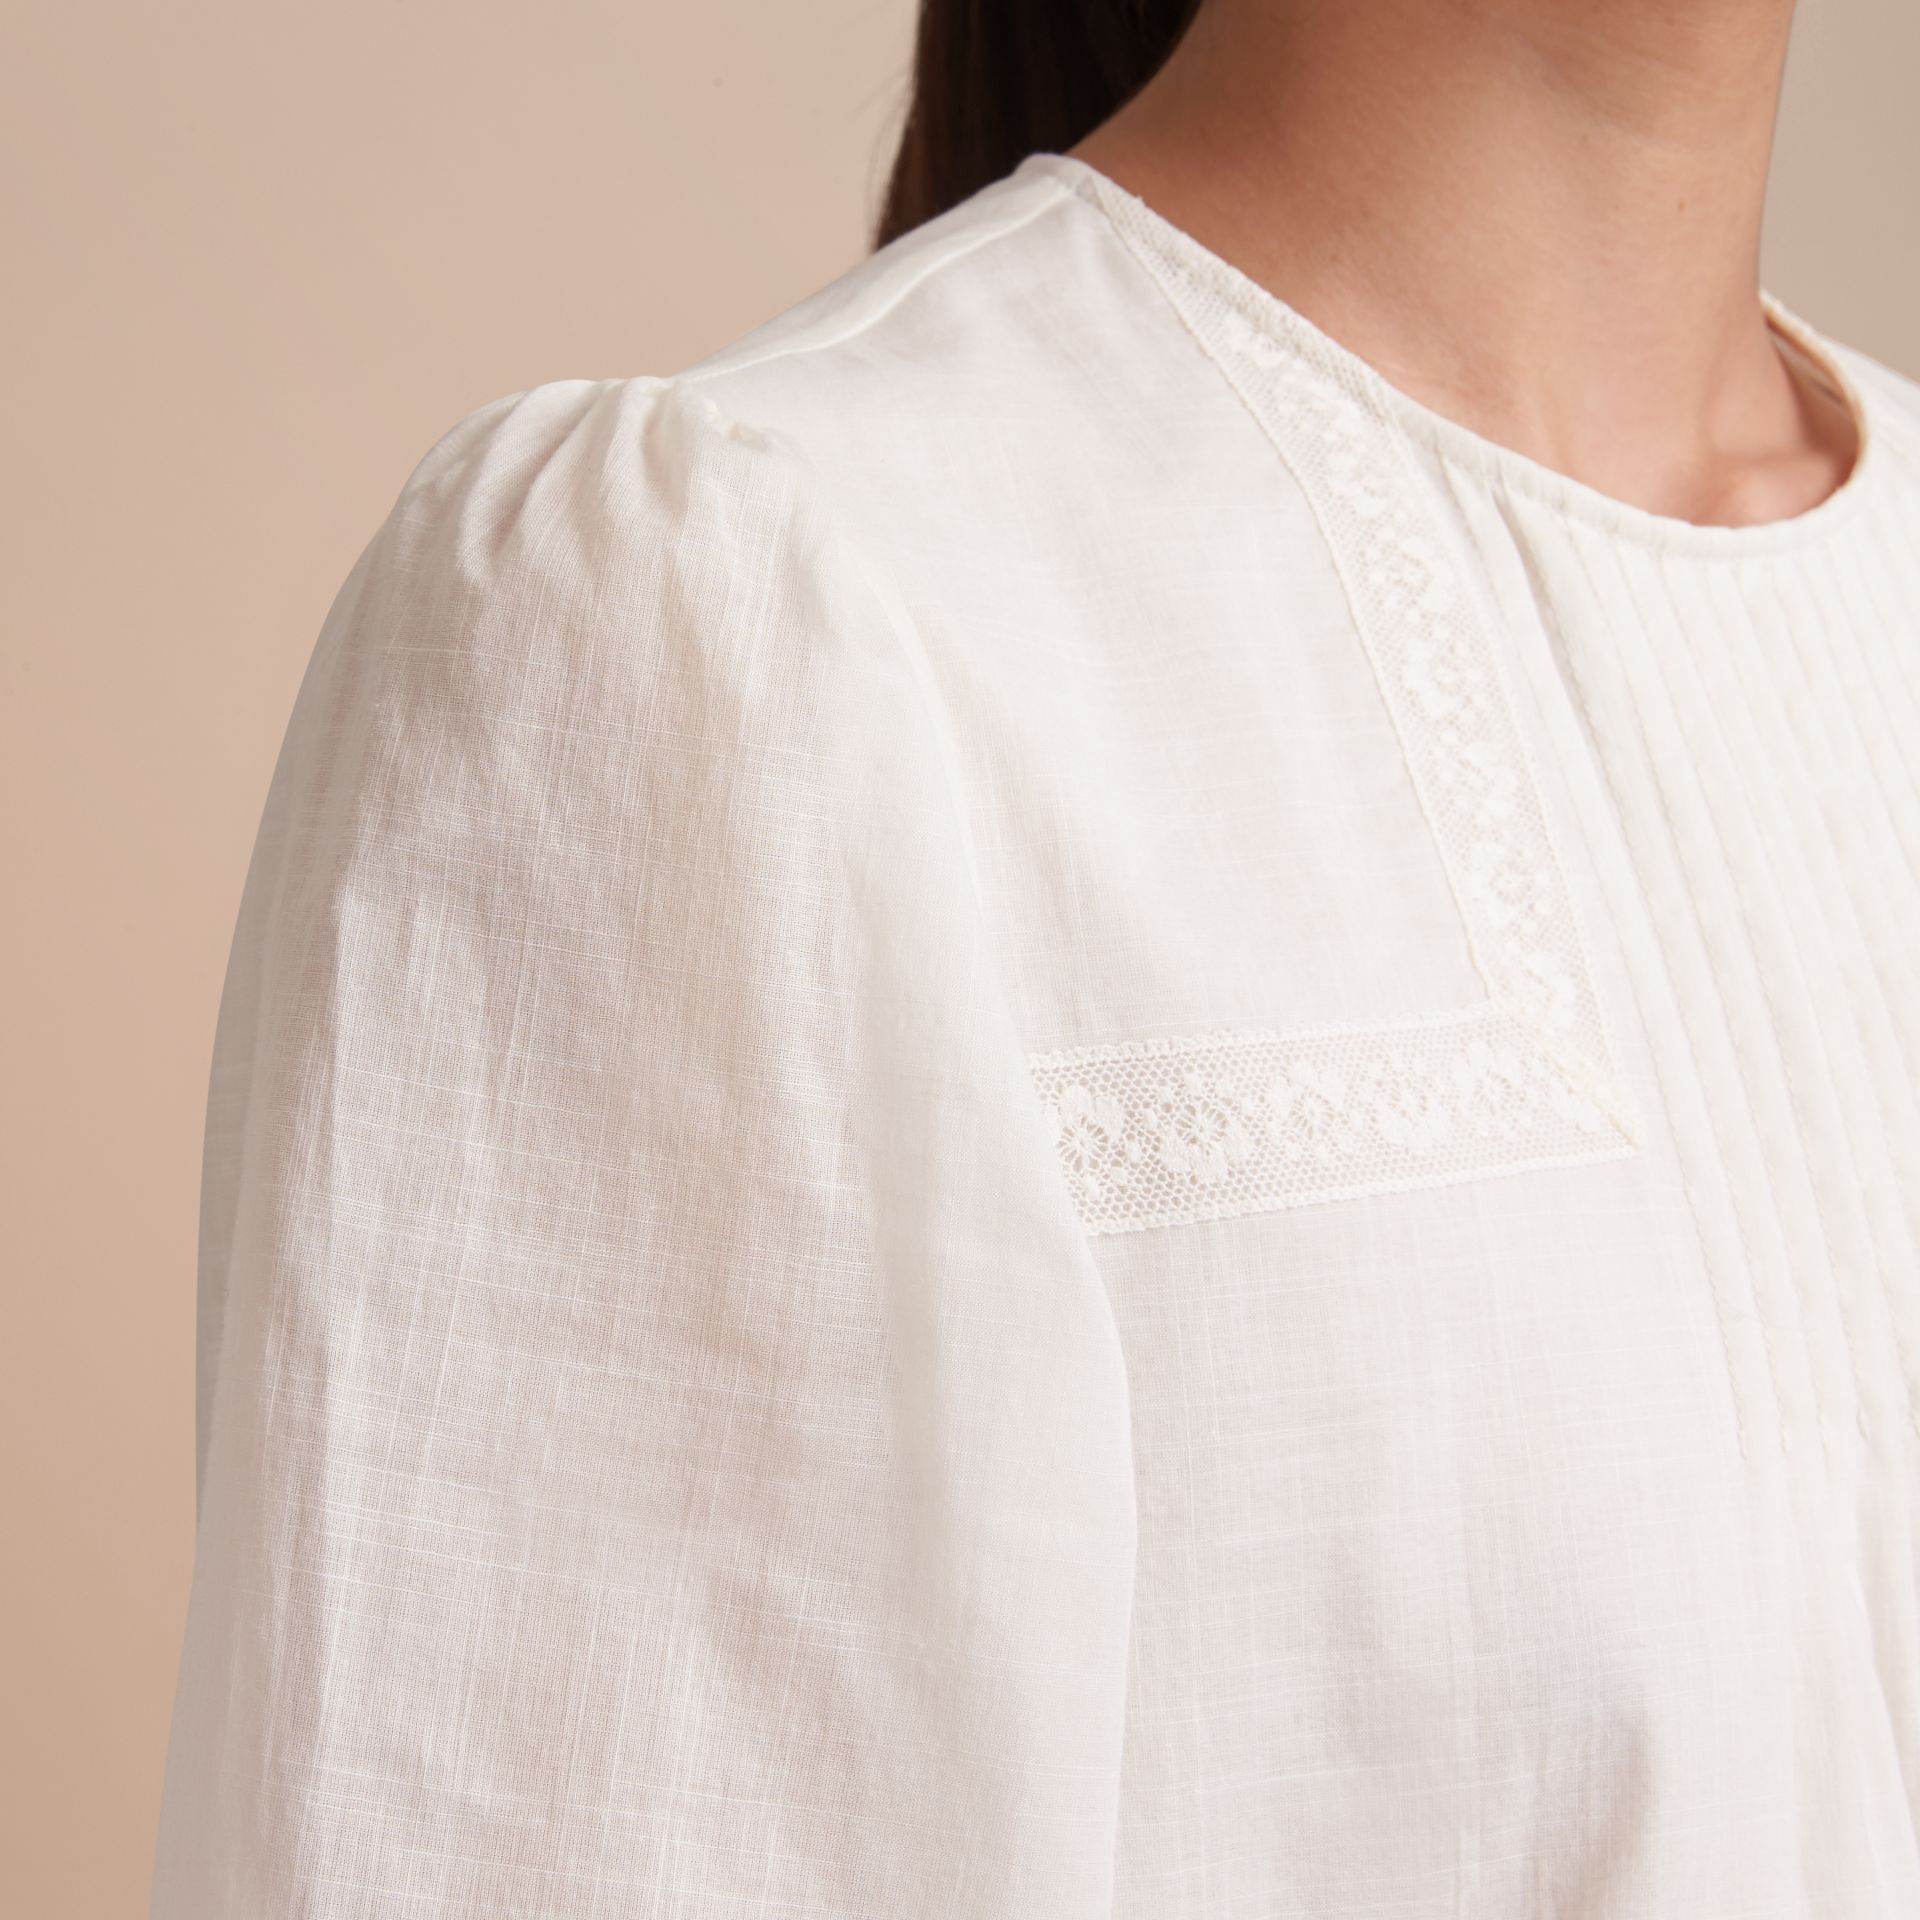 Pintuck and Lace Detail Cotton Dress in Natural White - Women | Burberry - gallery image 5